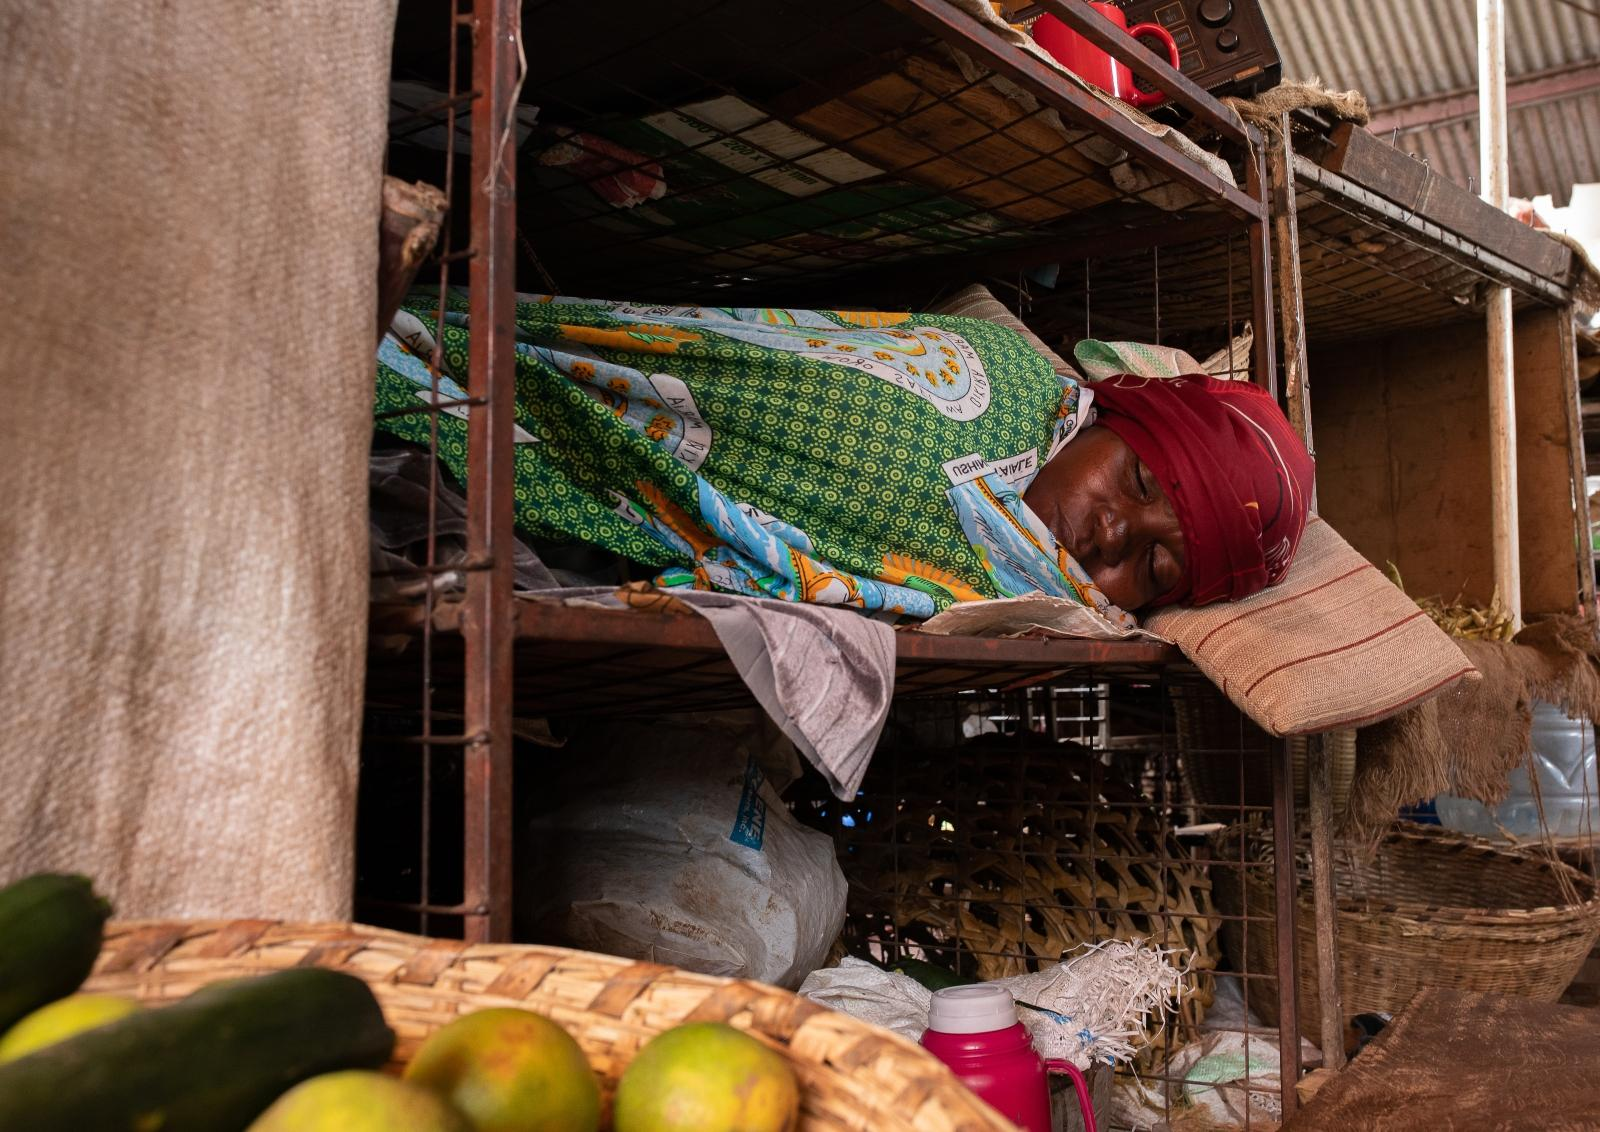 A woman asleep in her market stall on a ledge surrounded by fruit